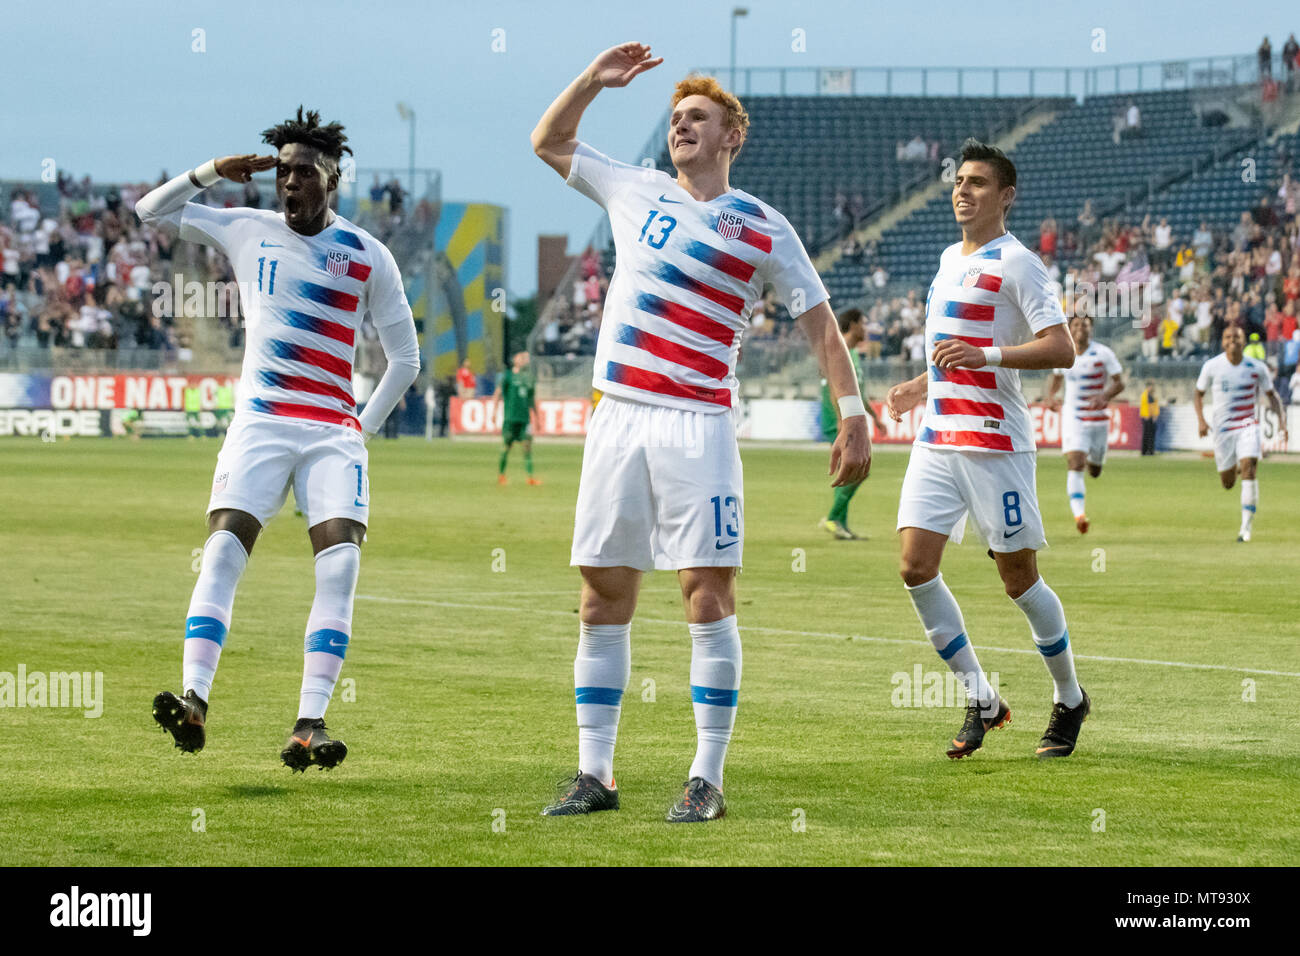 Chester, USA. 28th May 2018. Josh Sargent scores and celebrates his first international football / soccer goal for the United States Mens National Team / USMNT Credit: Don Mennig/Alamy Live News Stock Photo